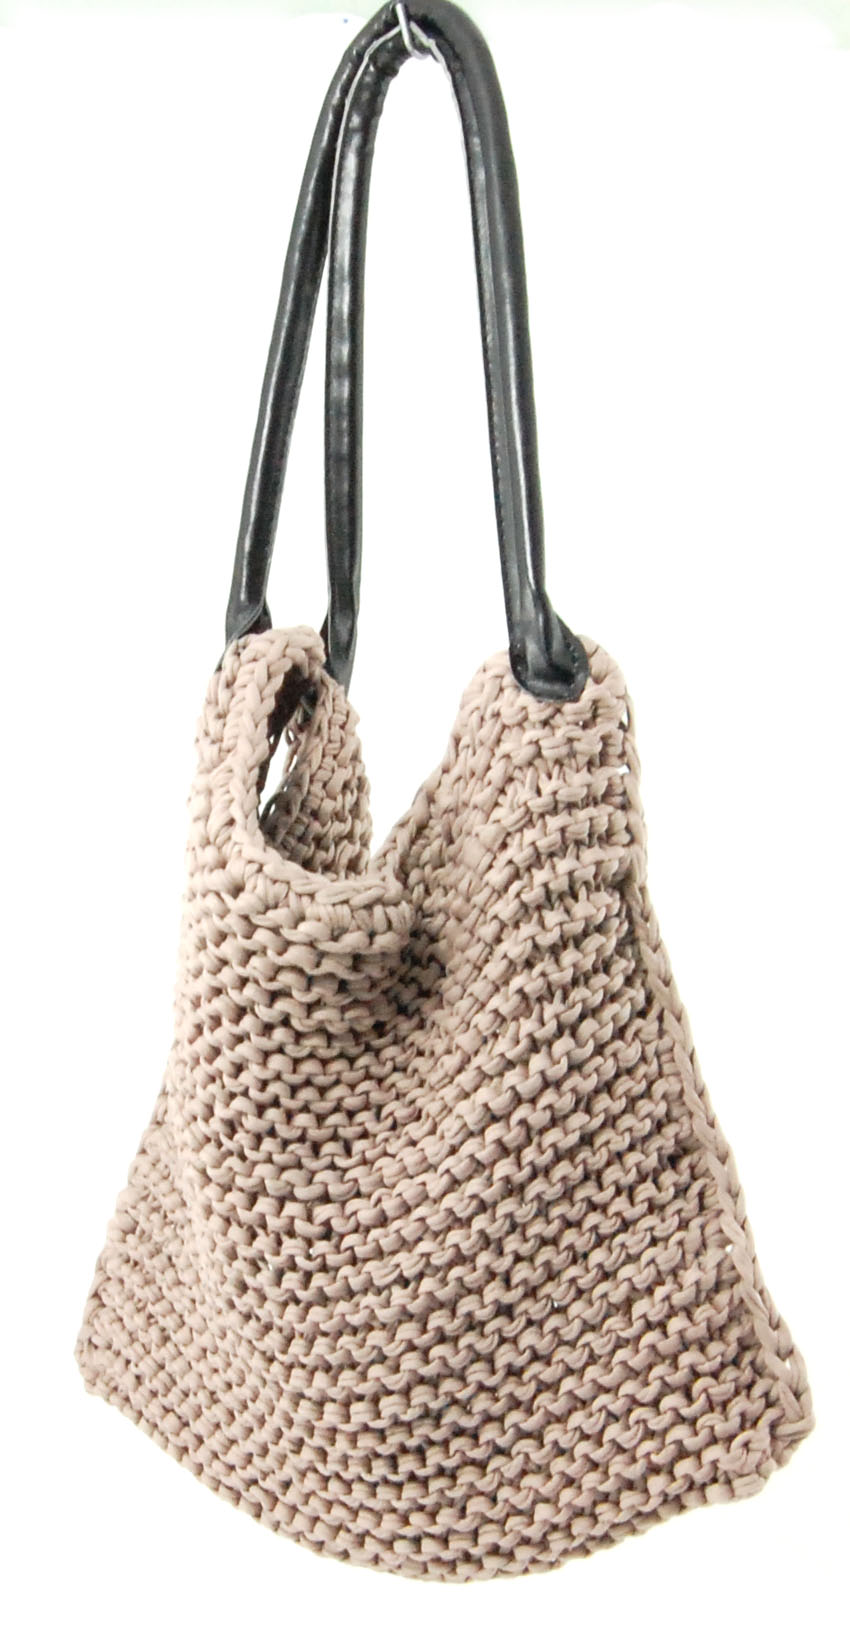 Yarn Bag Pattern : Posted on January 23, 2013 by lvly